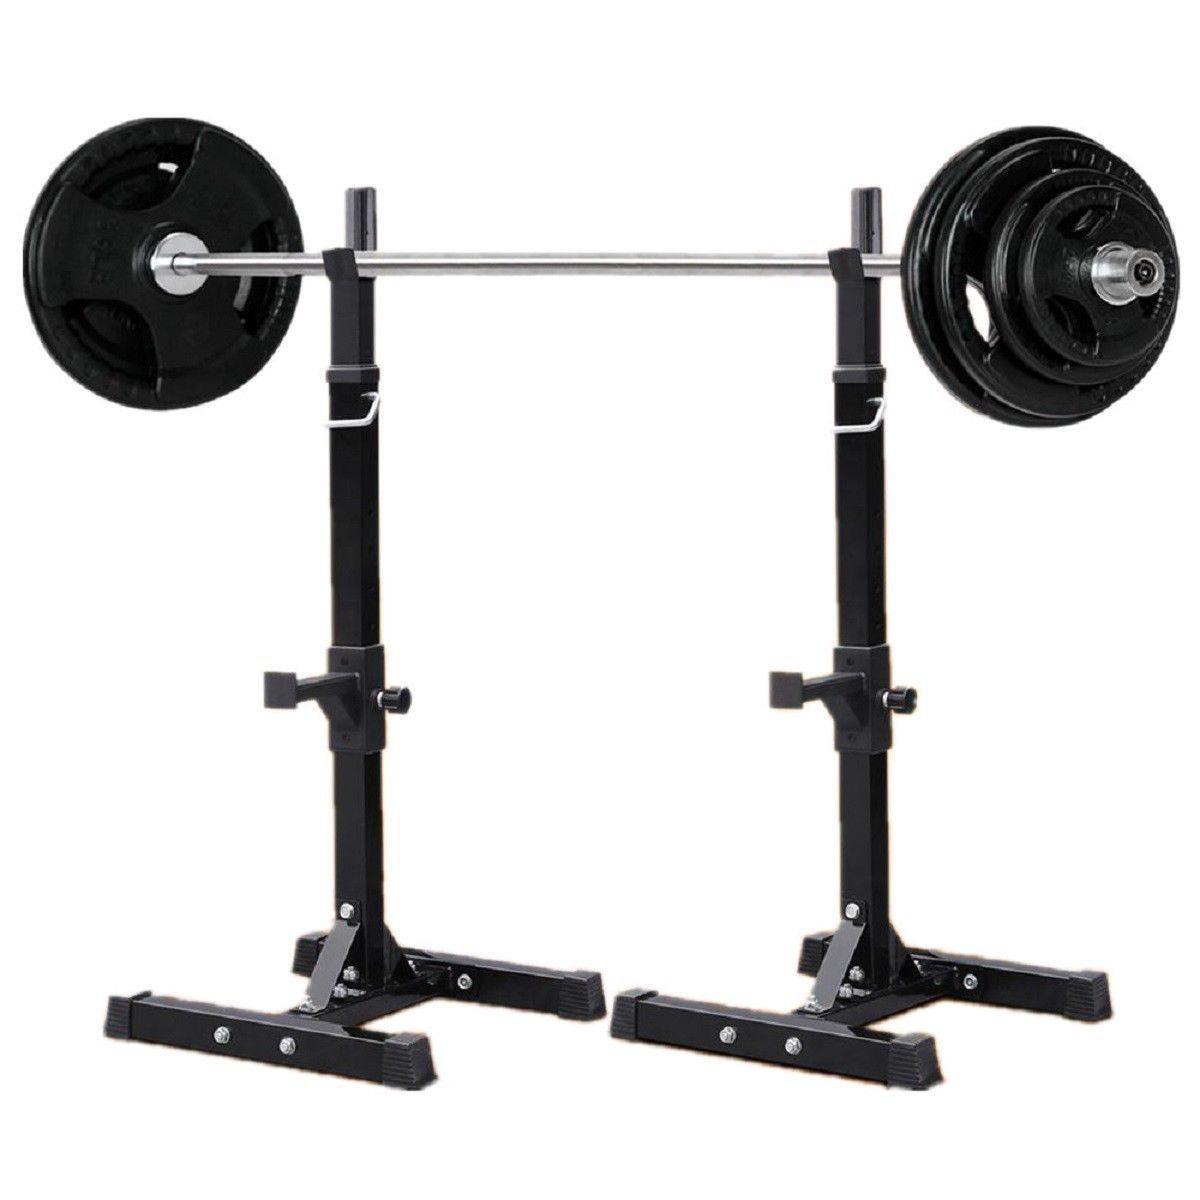 2 Adjustable Solid Steel Squat Barbell Stand Rack Free Press Bench Gym Pair Work Out Wear Squat Stands Squats Best Treadmill For Home